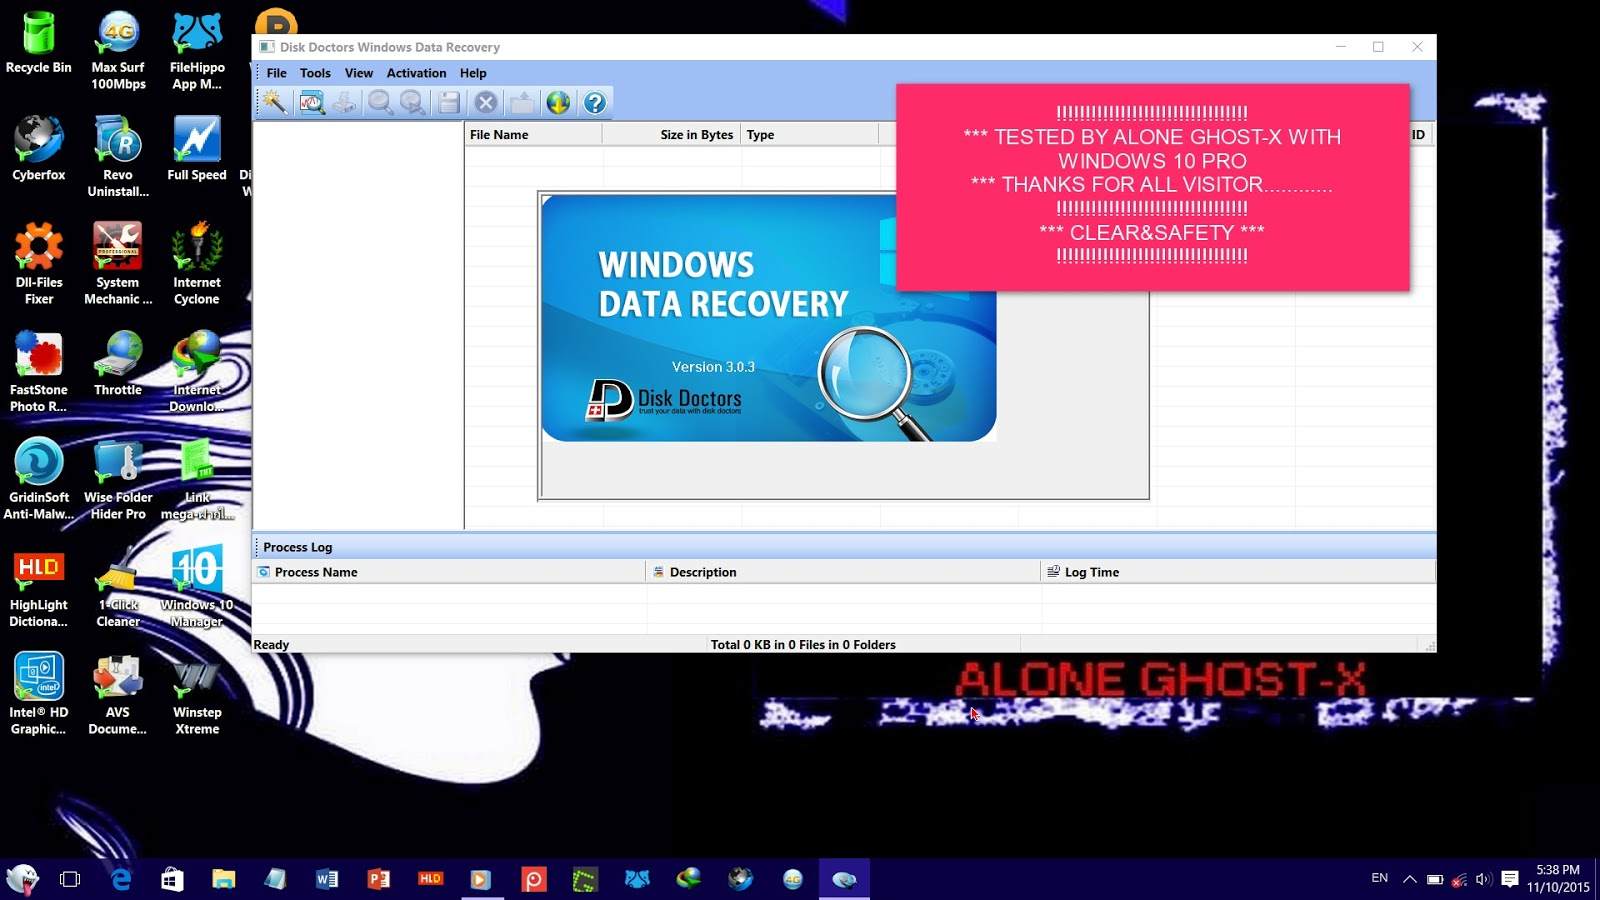 Disk doctors windows data recovery 1.0.0.7 setup key